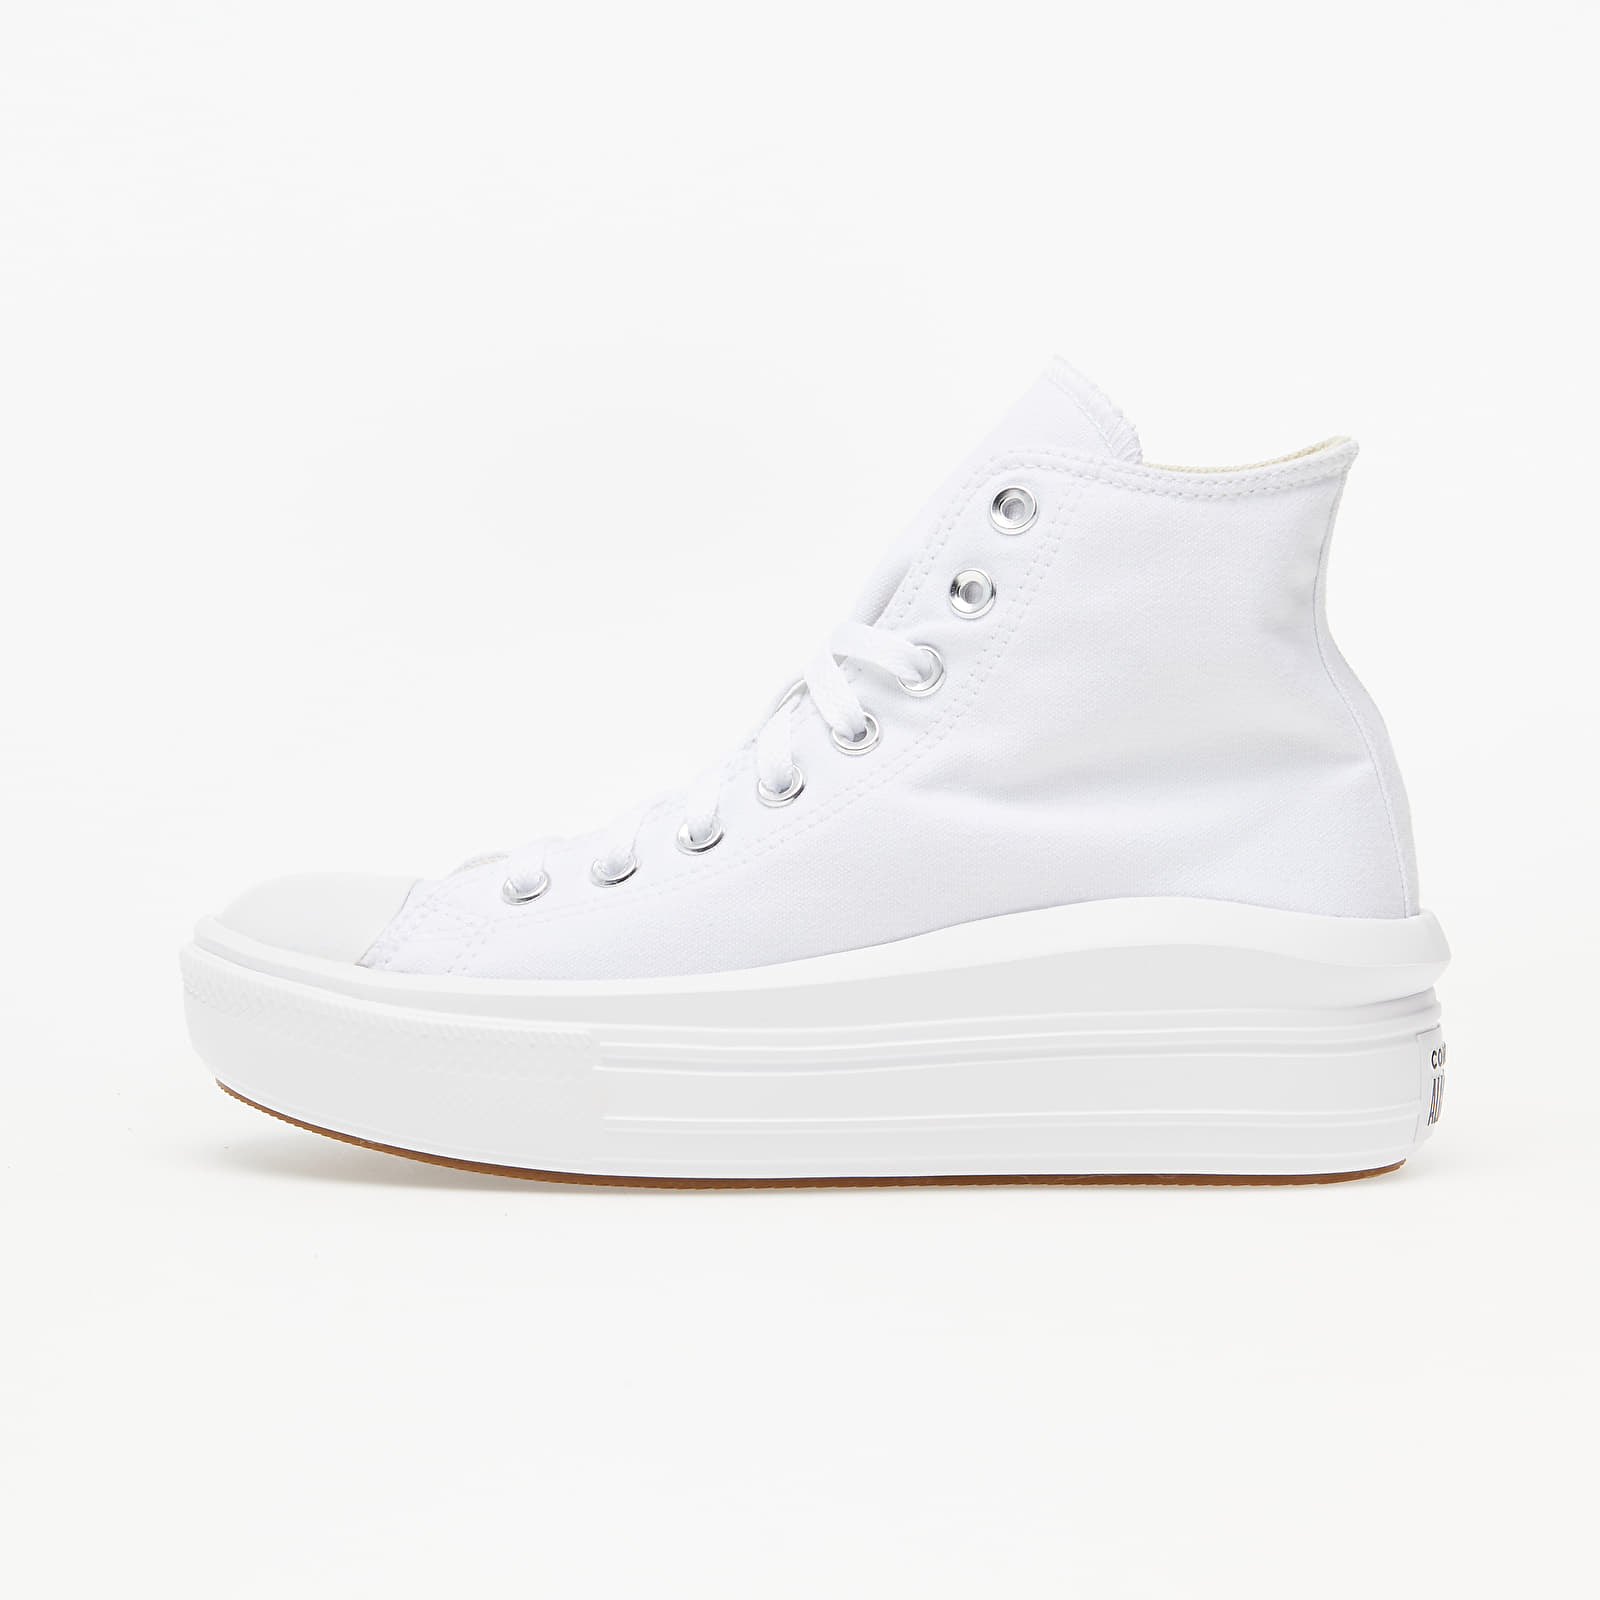 Converse Chuck Taylor All Star Move White/ Natural Ivory/ Black 568498C